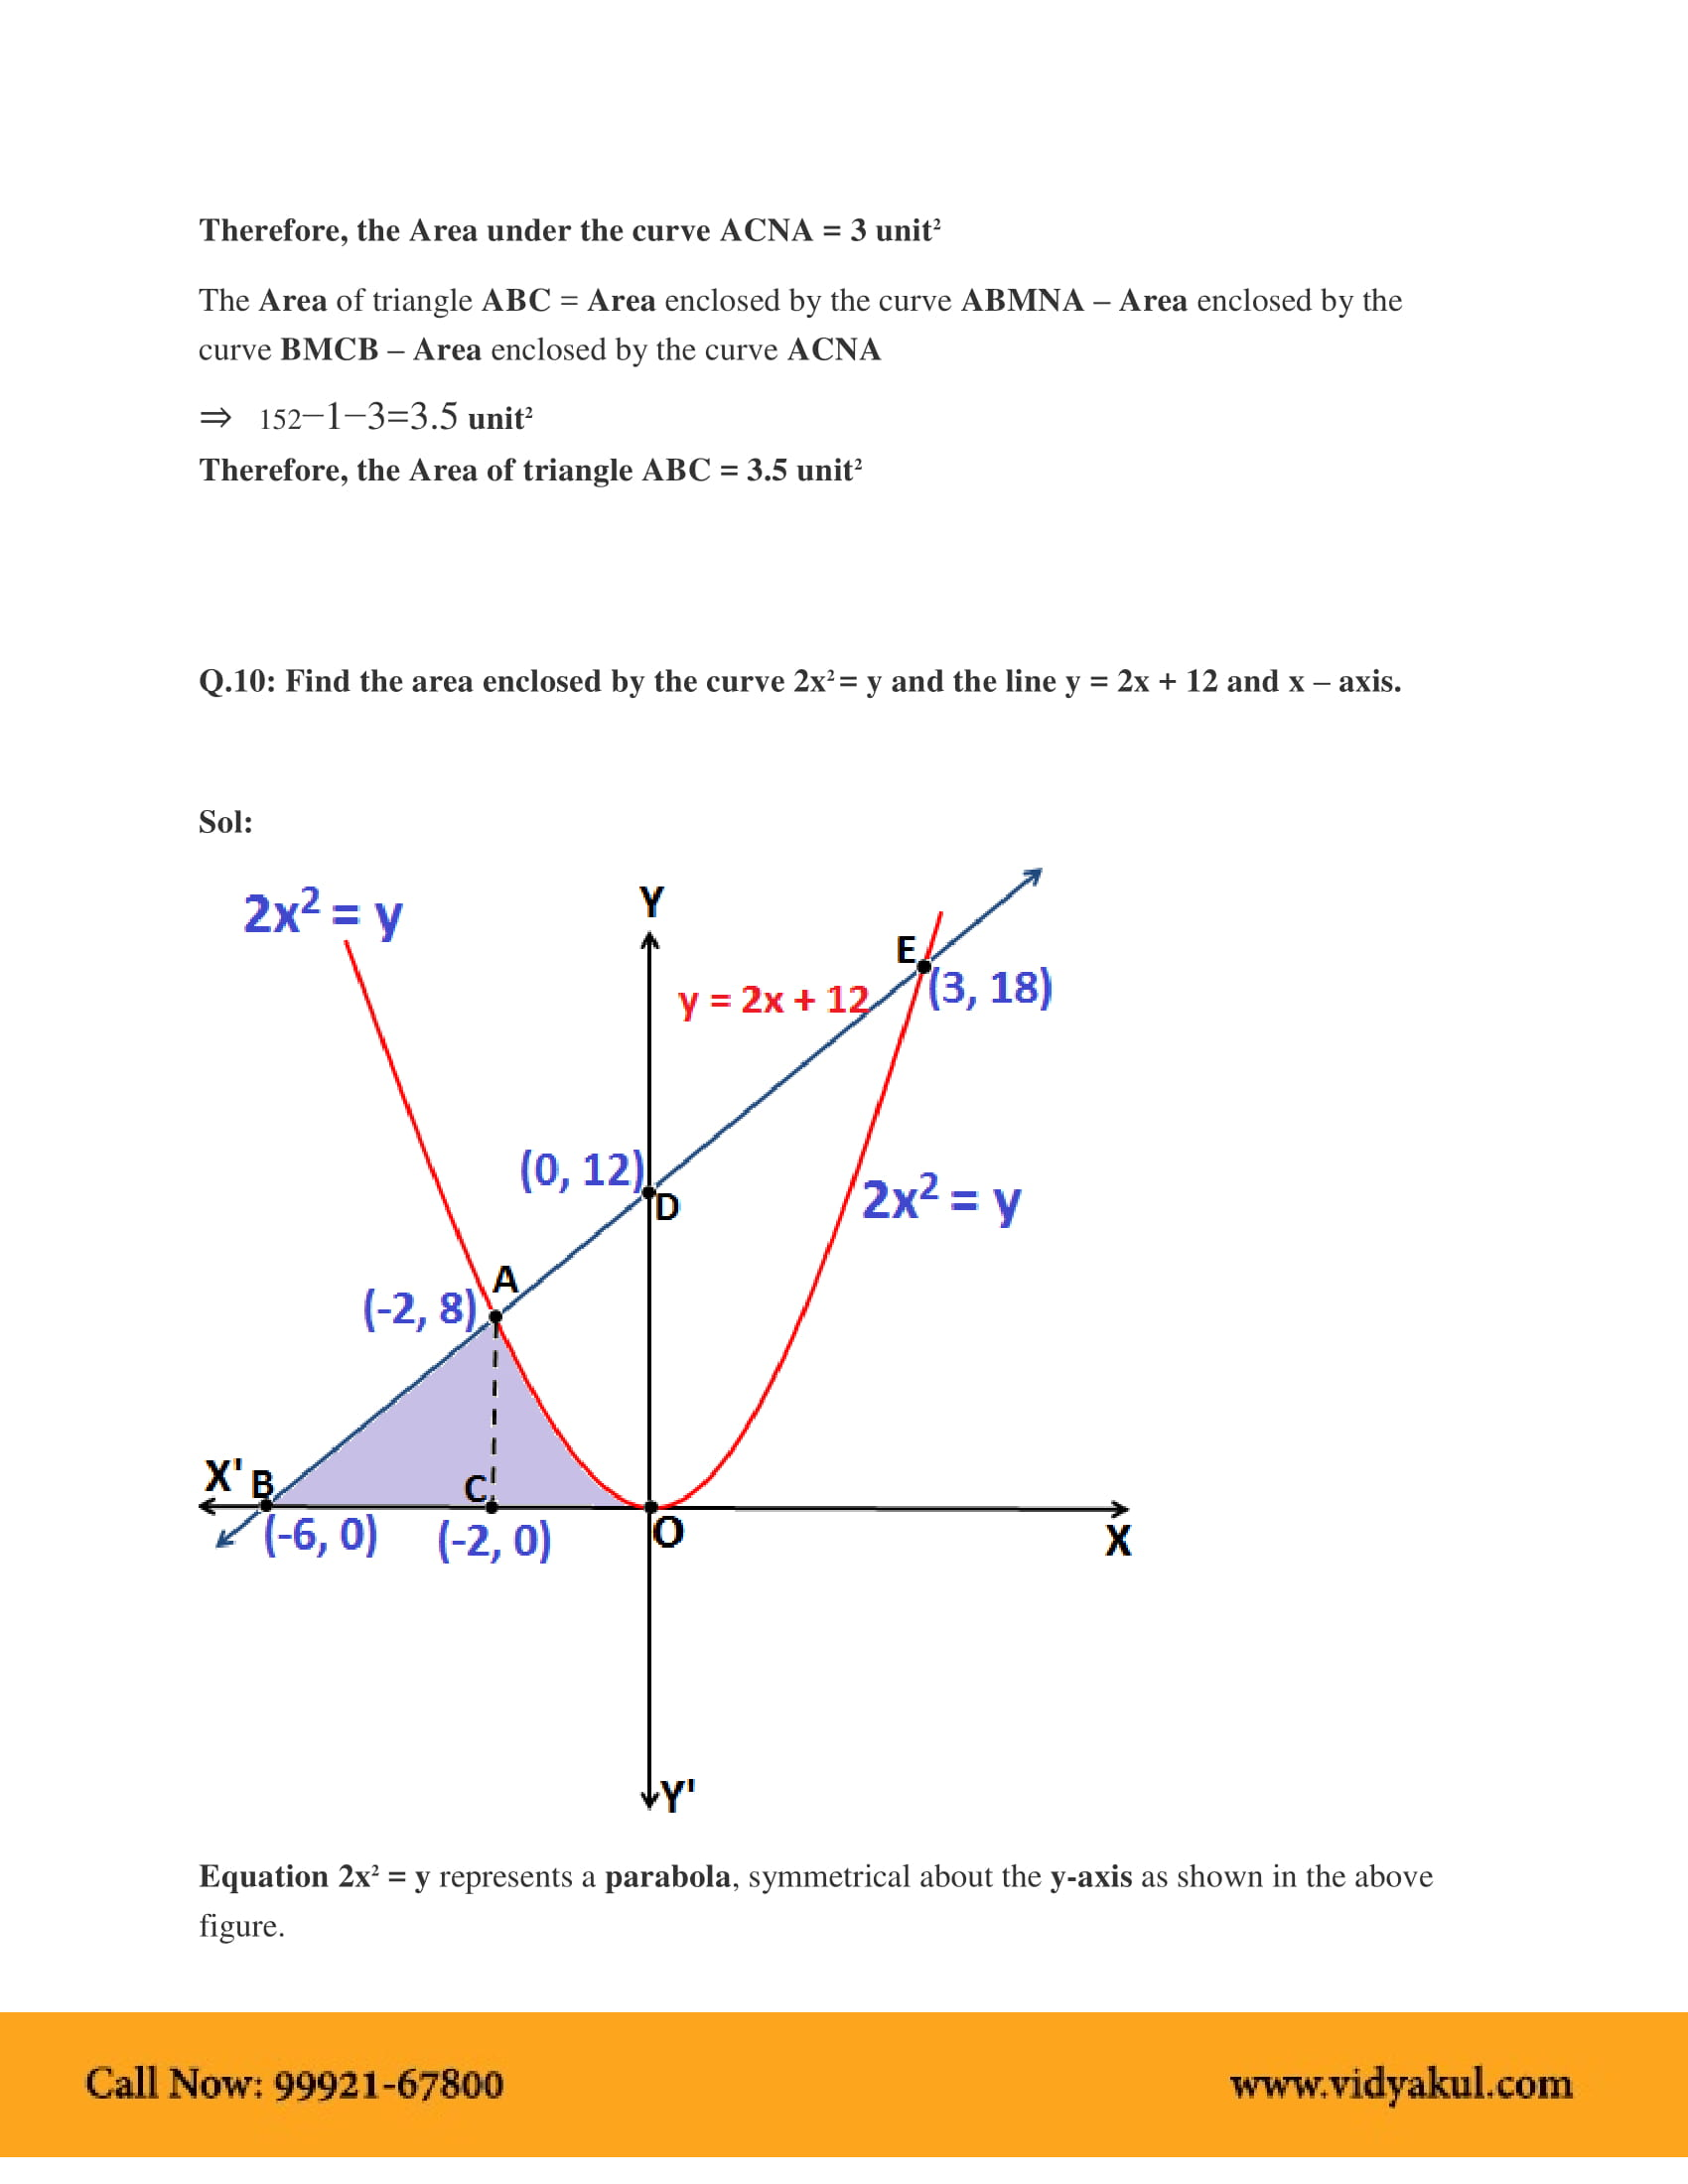 NCERT Solutions for Class 12 Maths Chapter 8 | Vidyakul